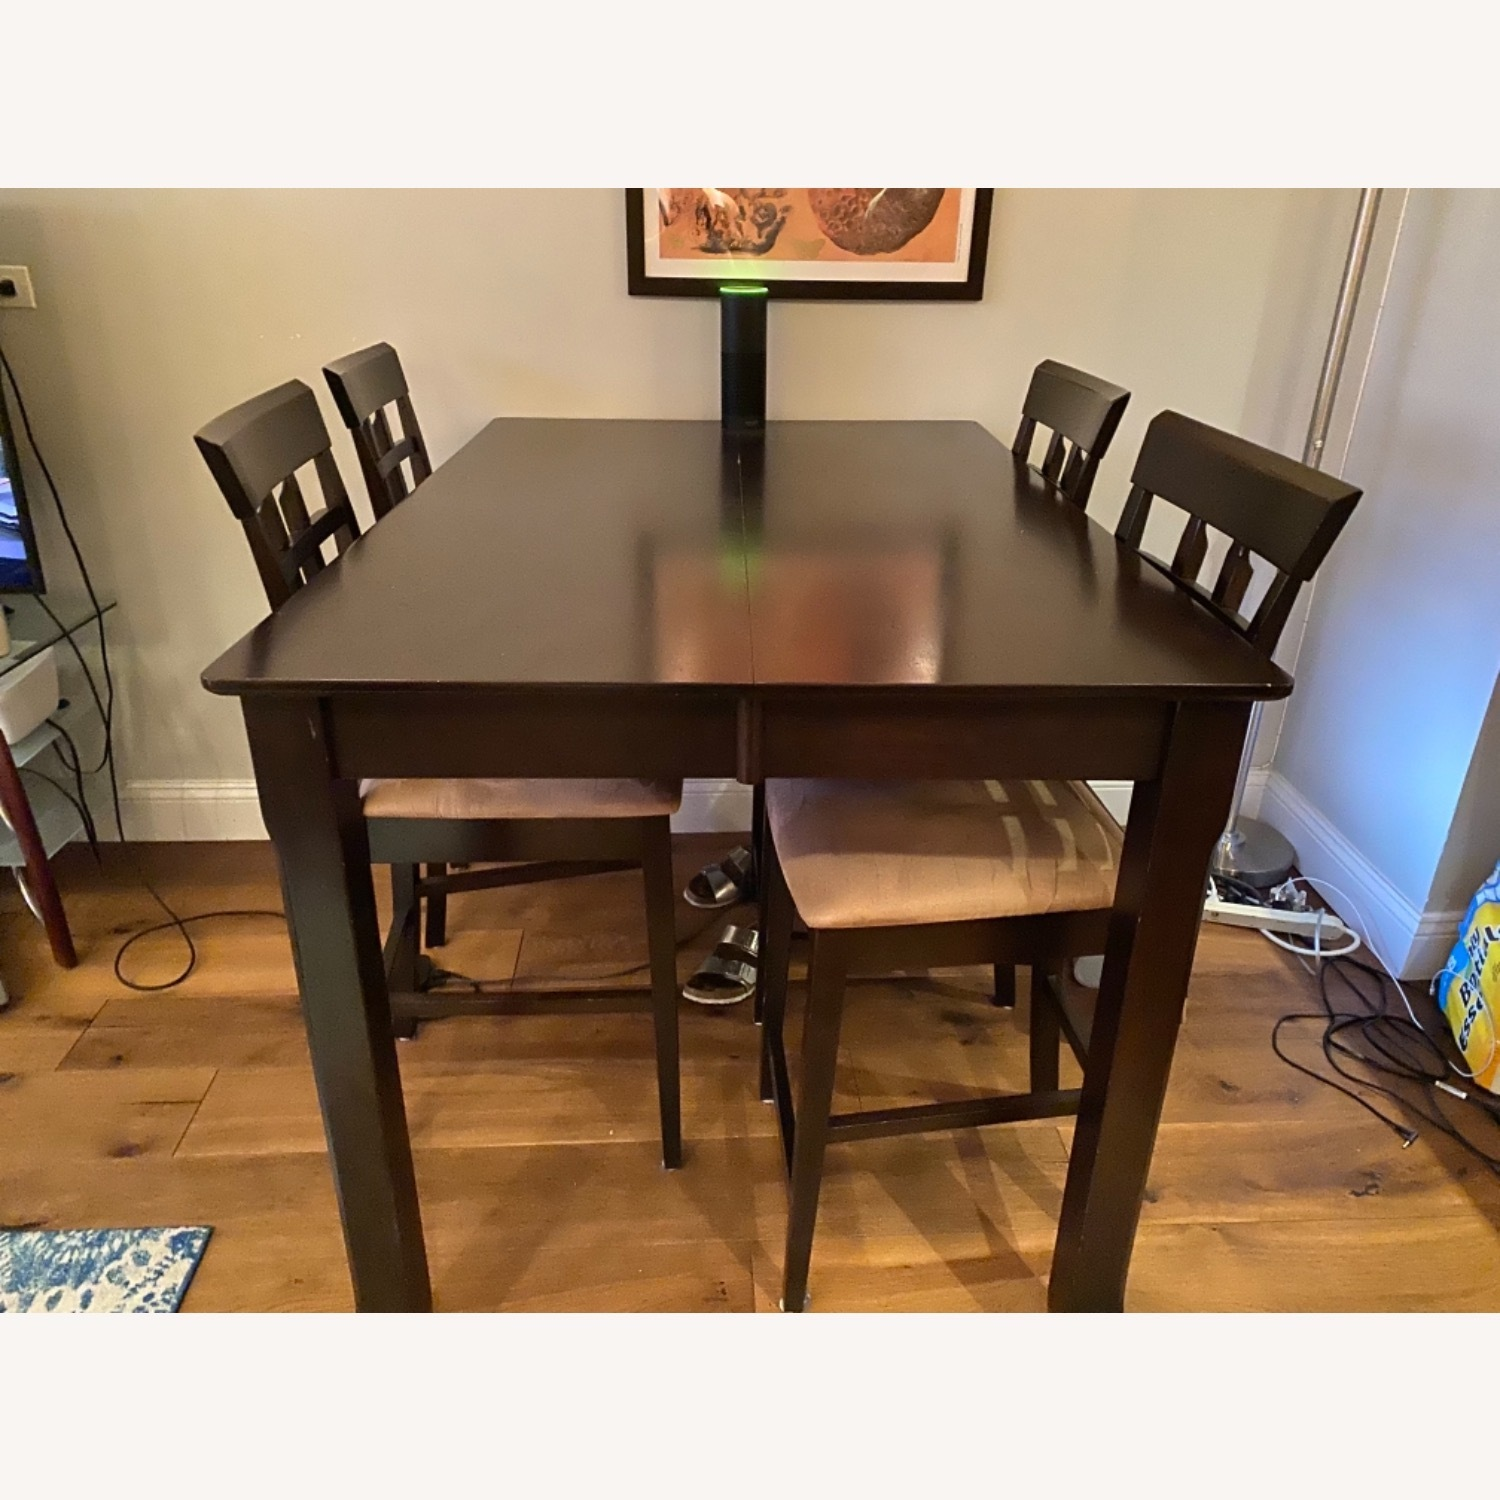 Rooms to Go Dining Set - image-1